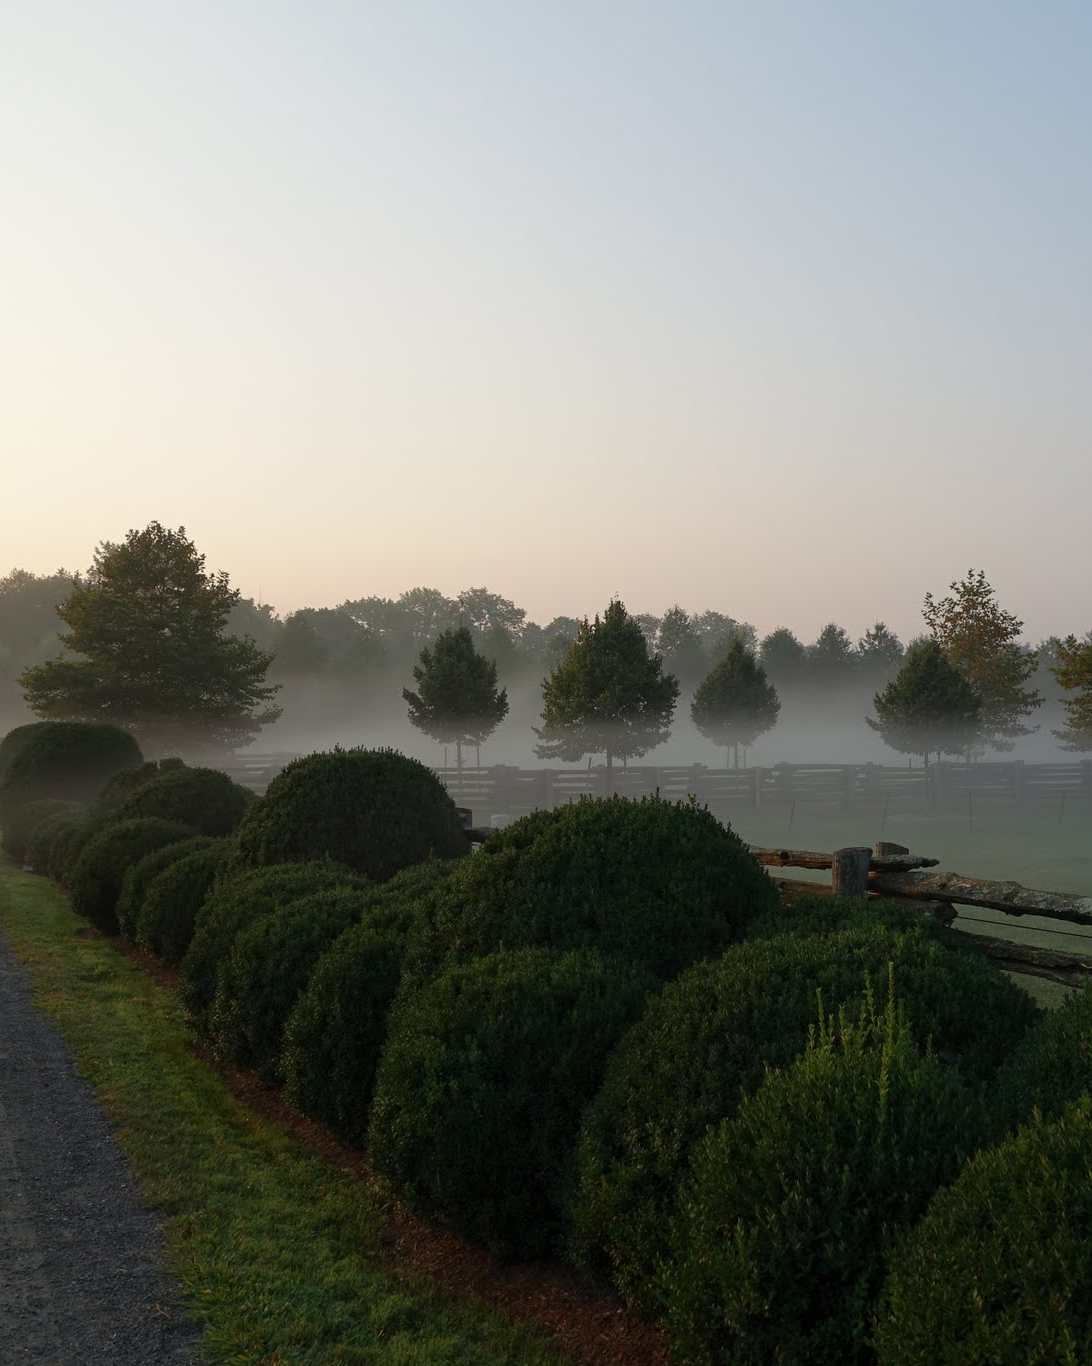 Early-Morning Fog at My Farm